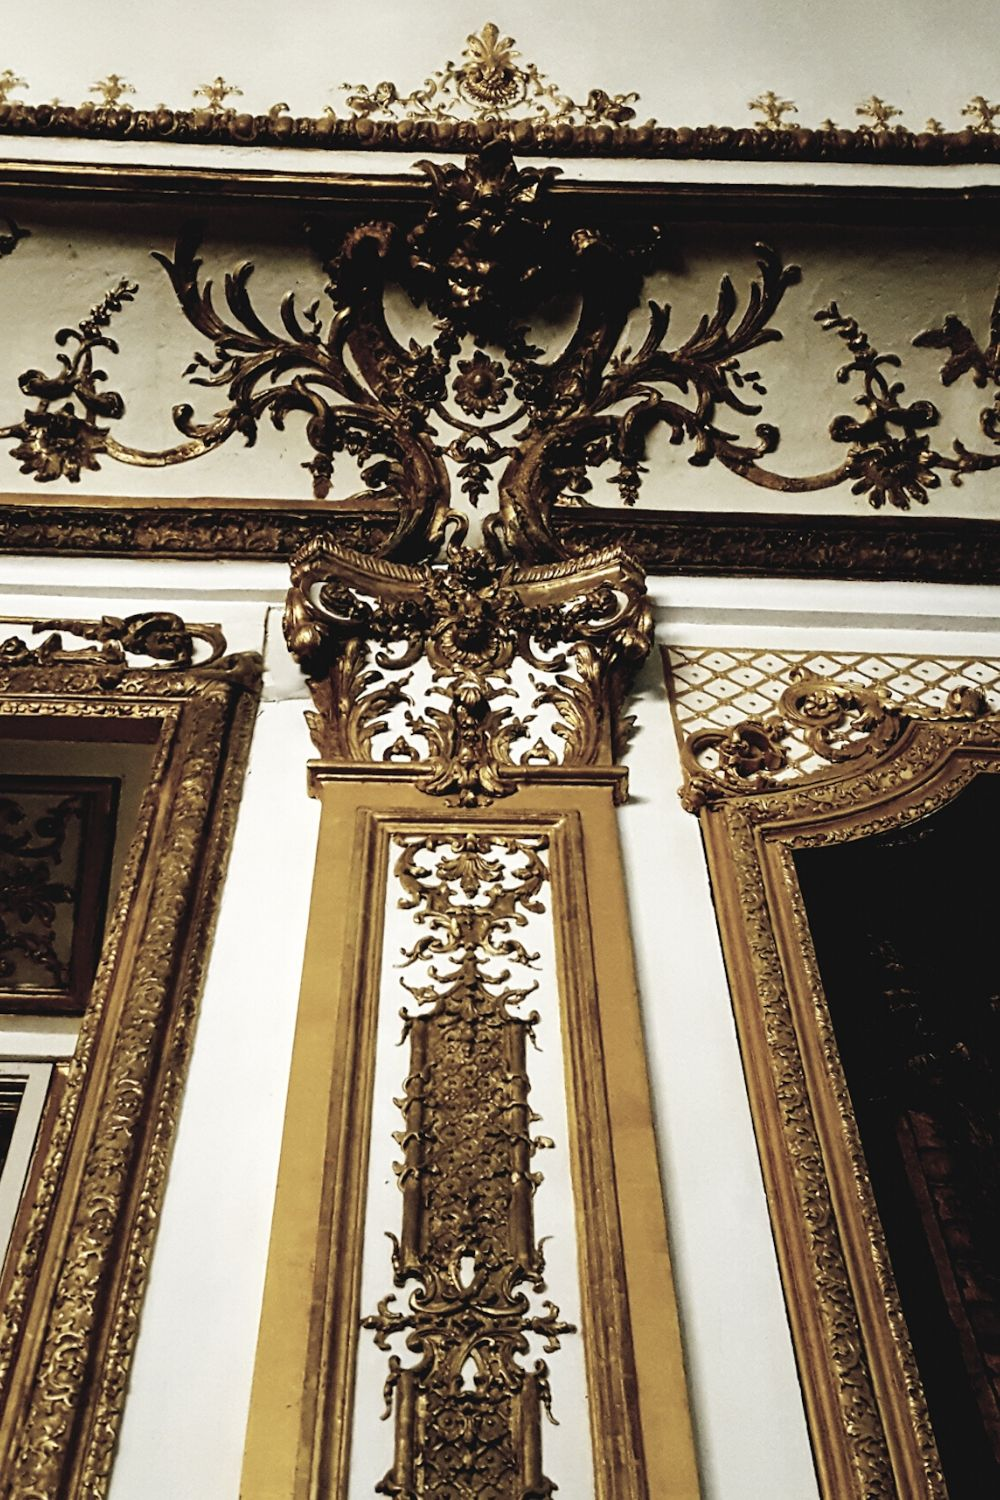 Gold moulding from a French palace interior